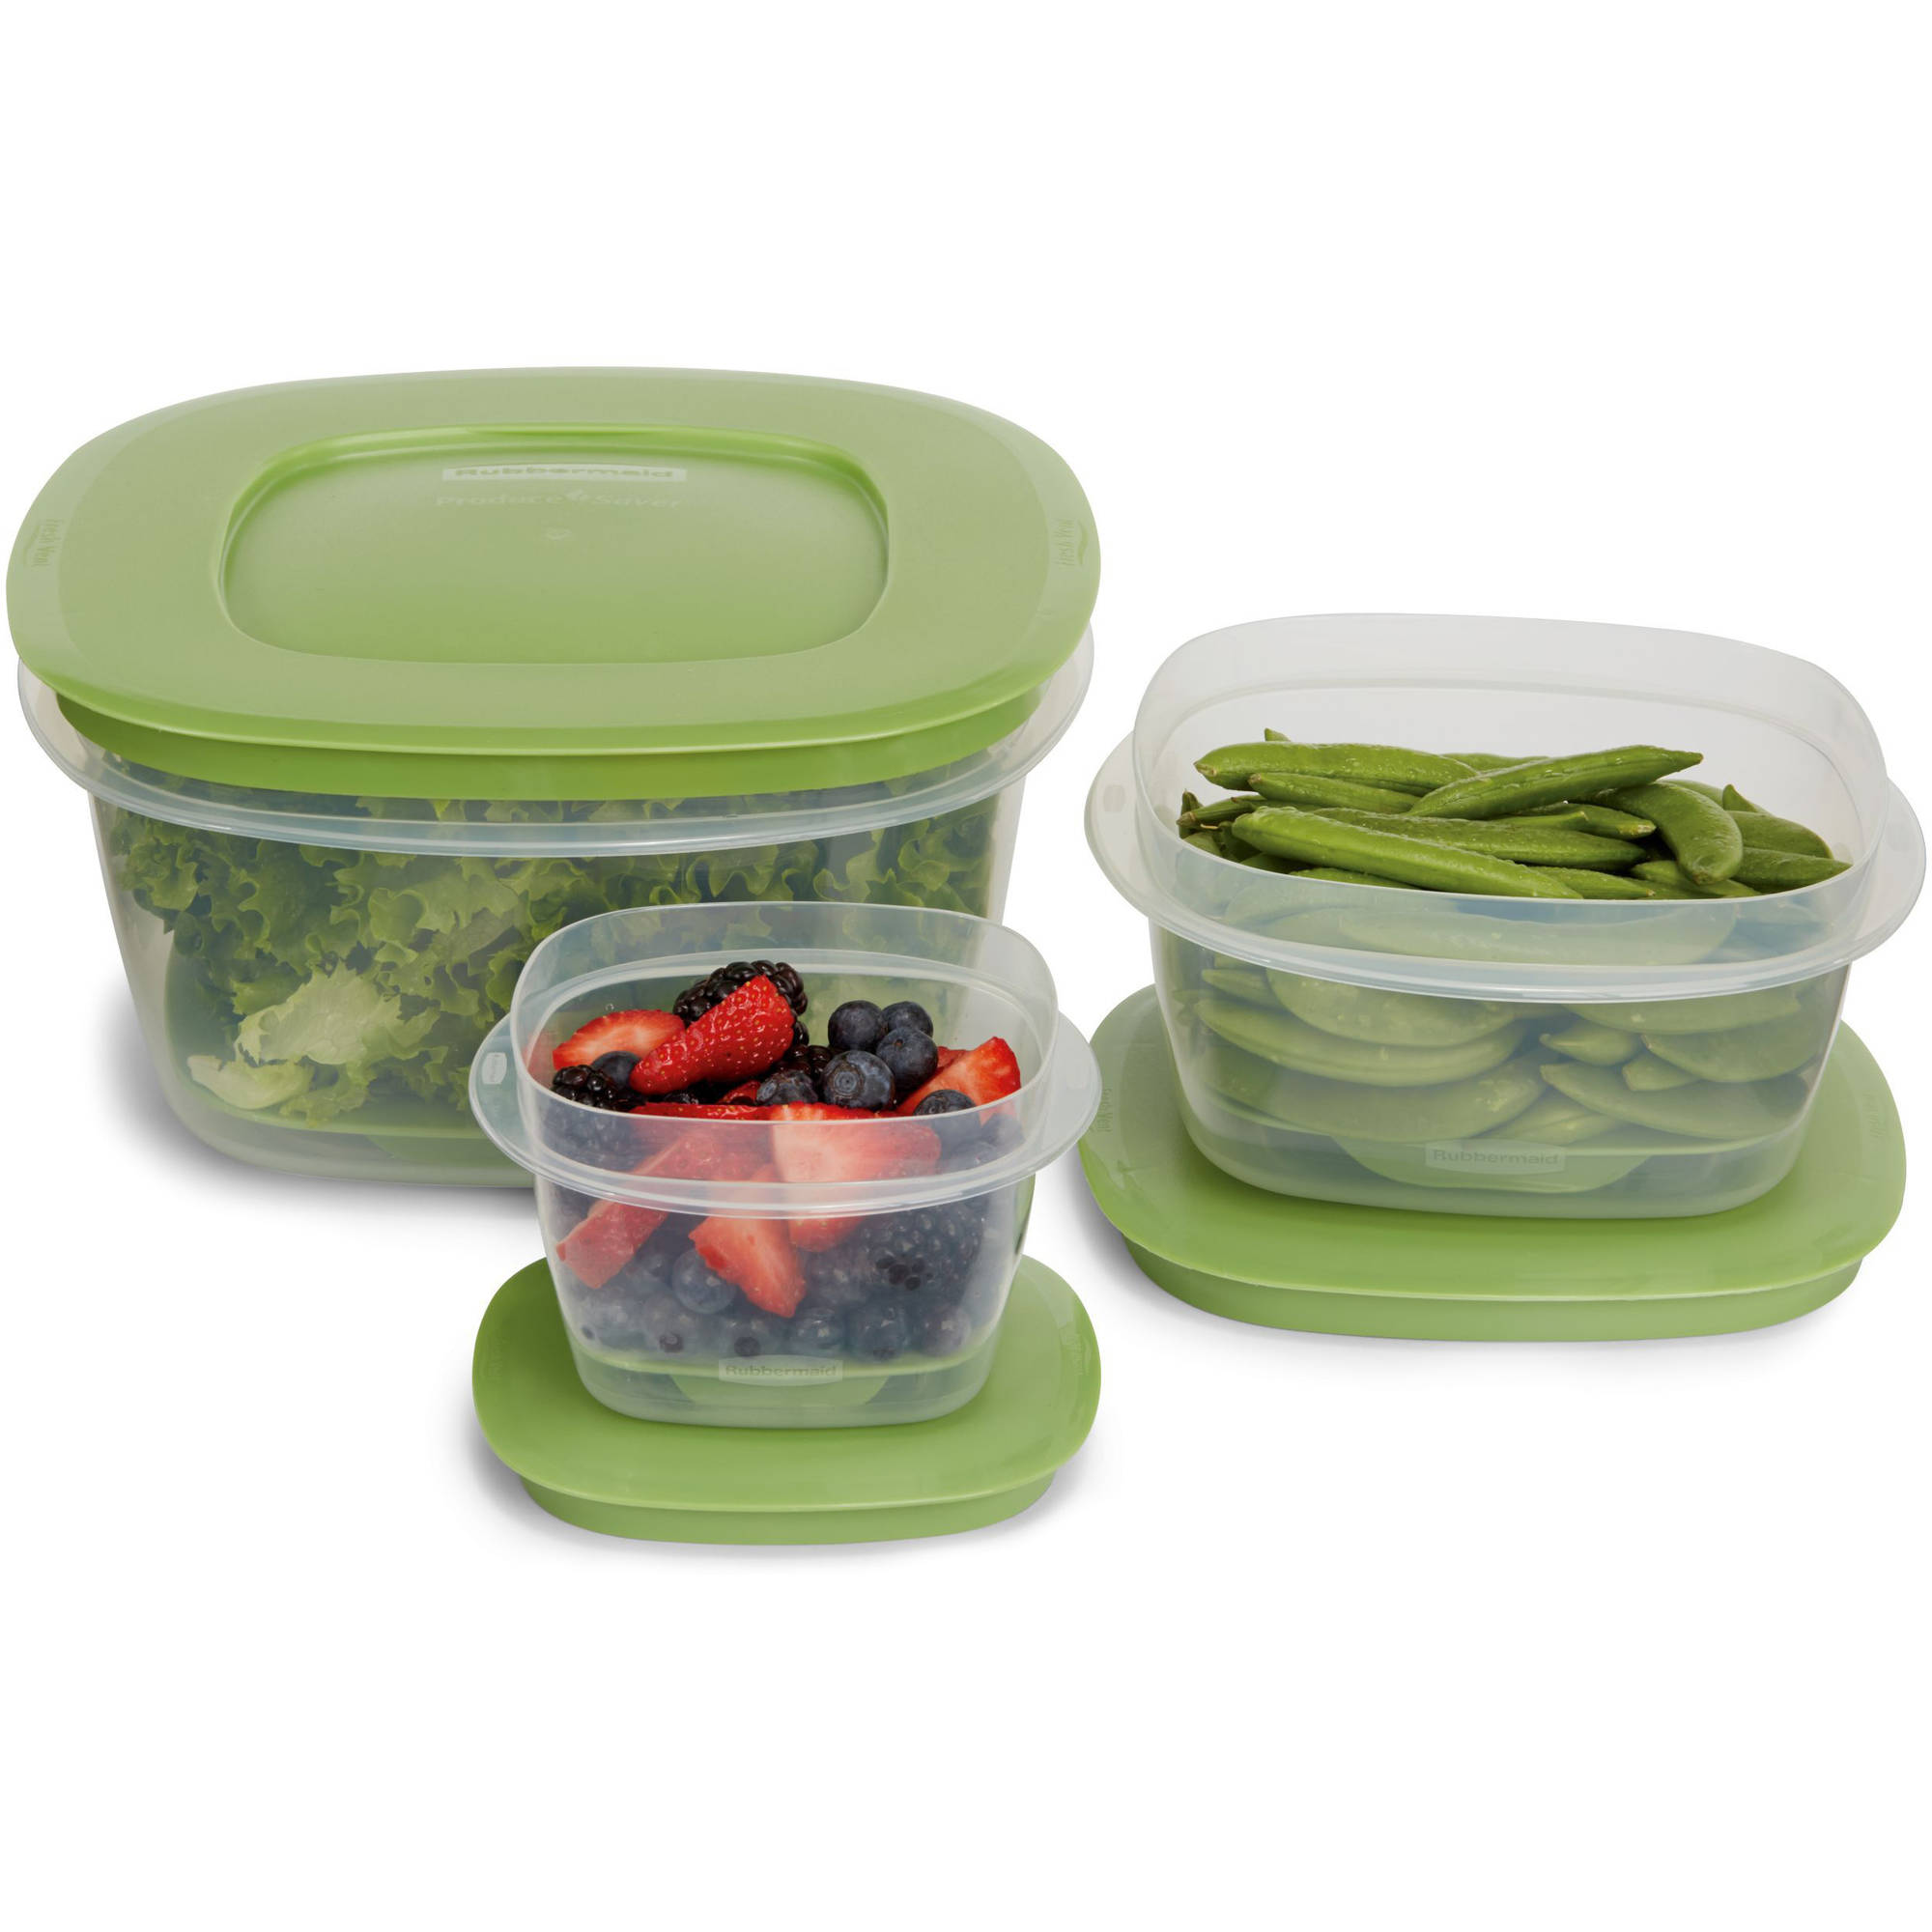 rubbermaid produce saver 3 pk walmart